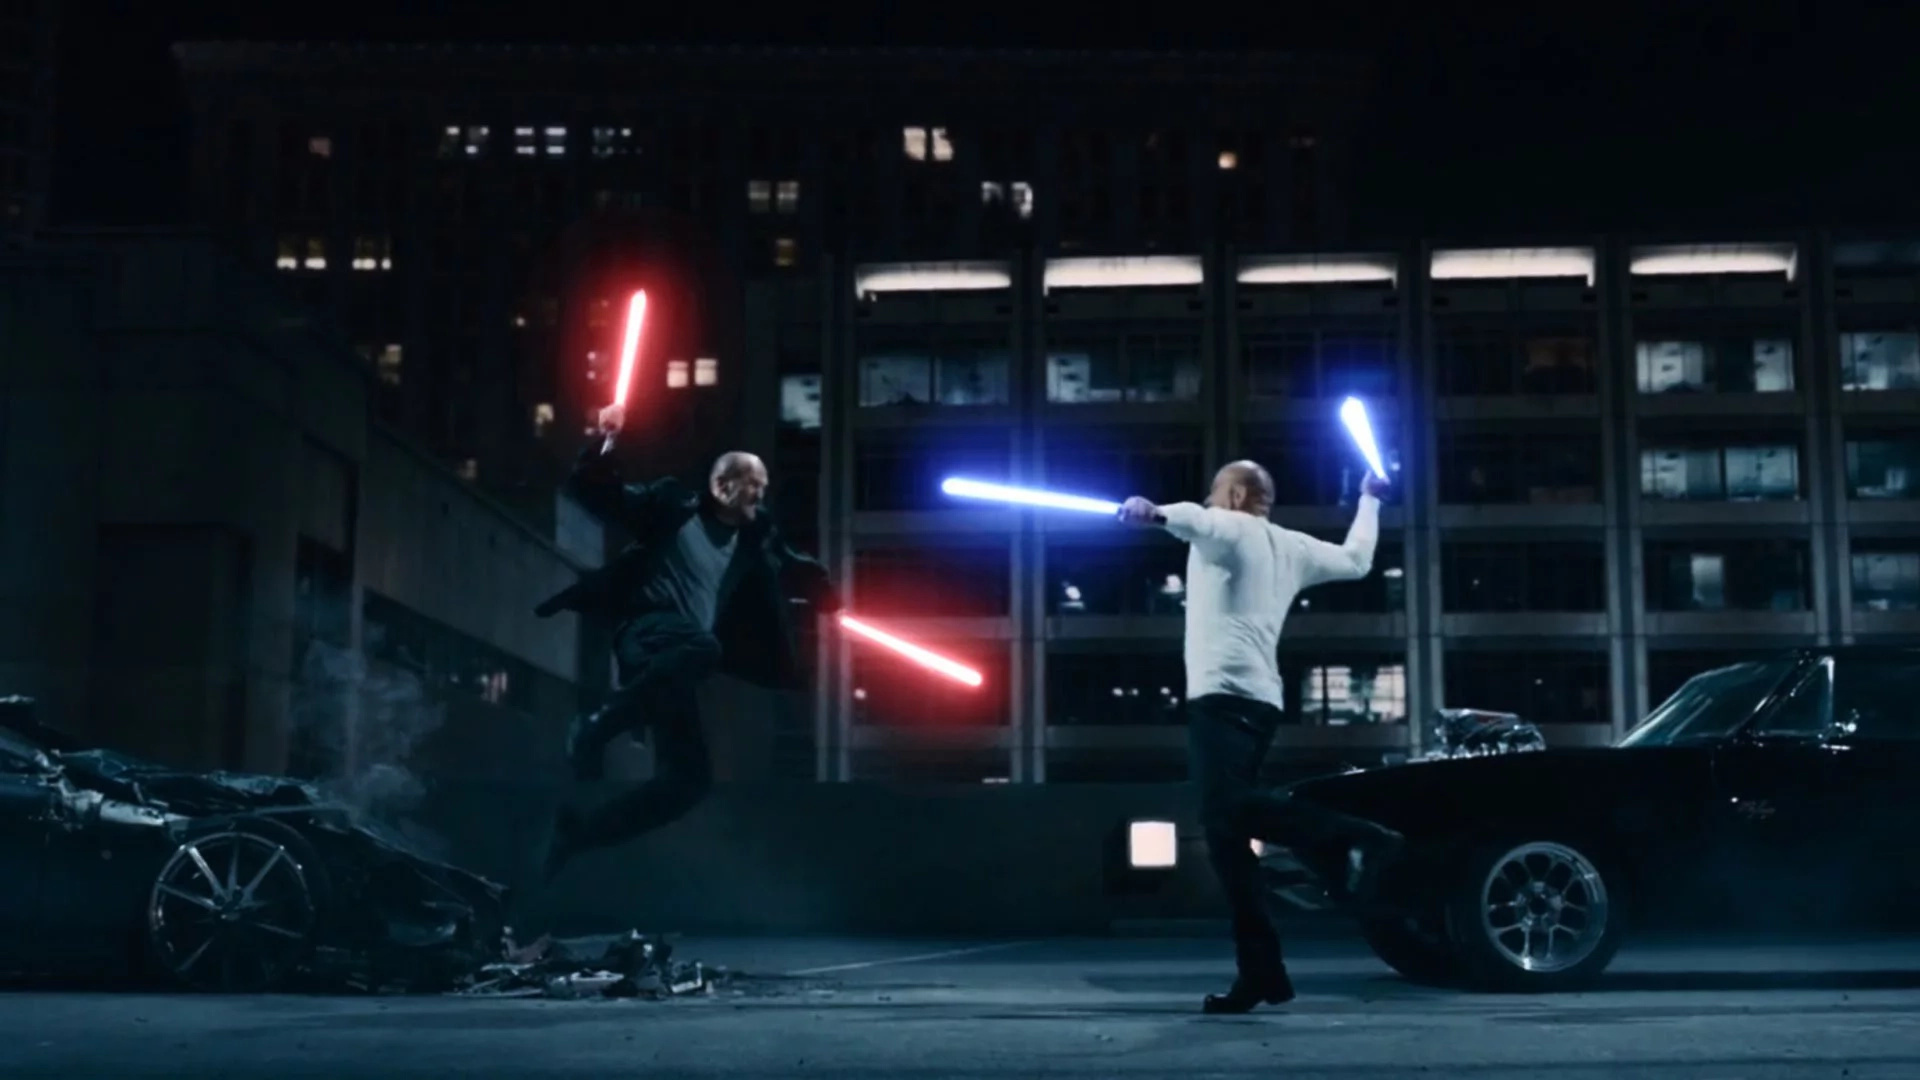 Vin Diesel + Jason Statham + Lightsabers = 1 badass fight!